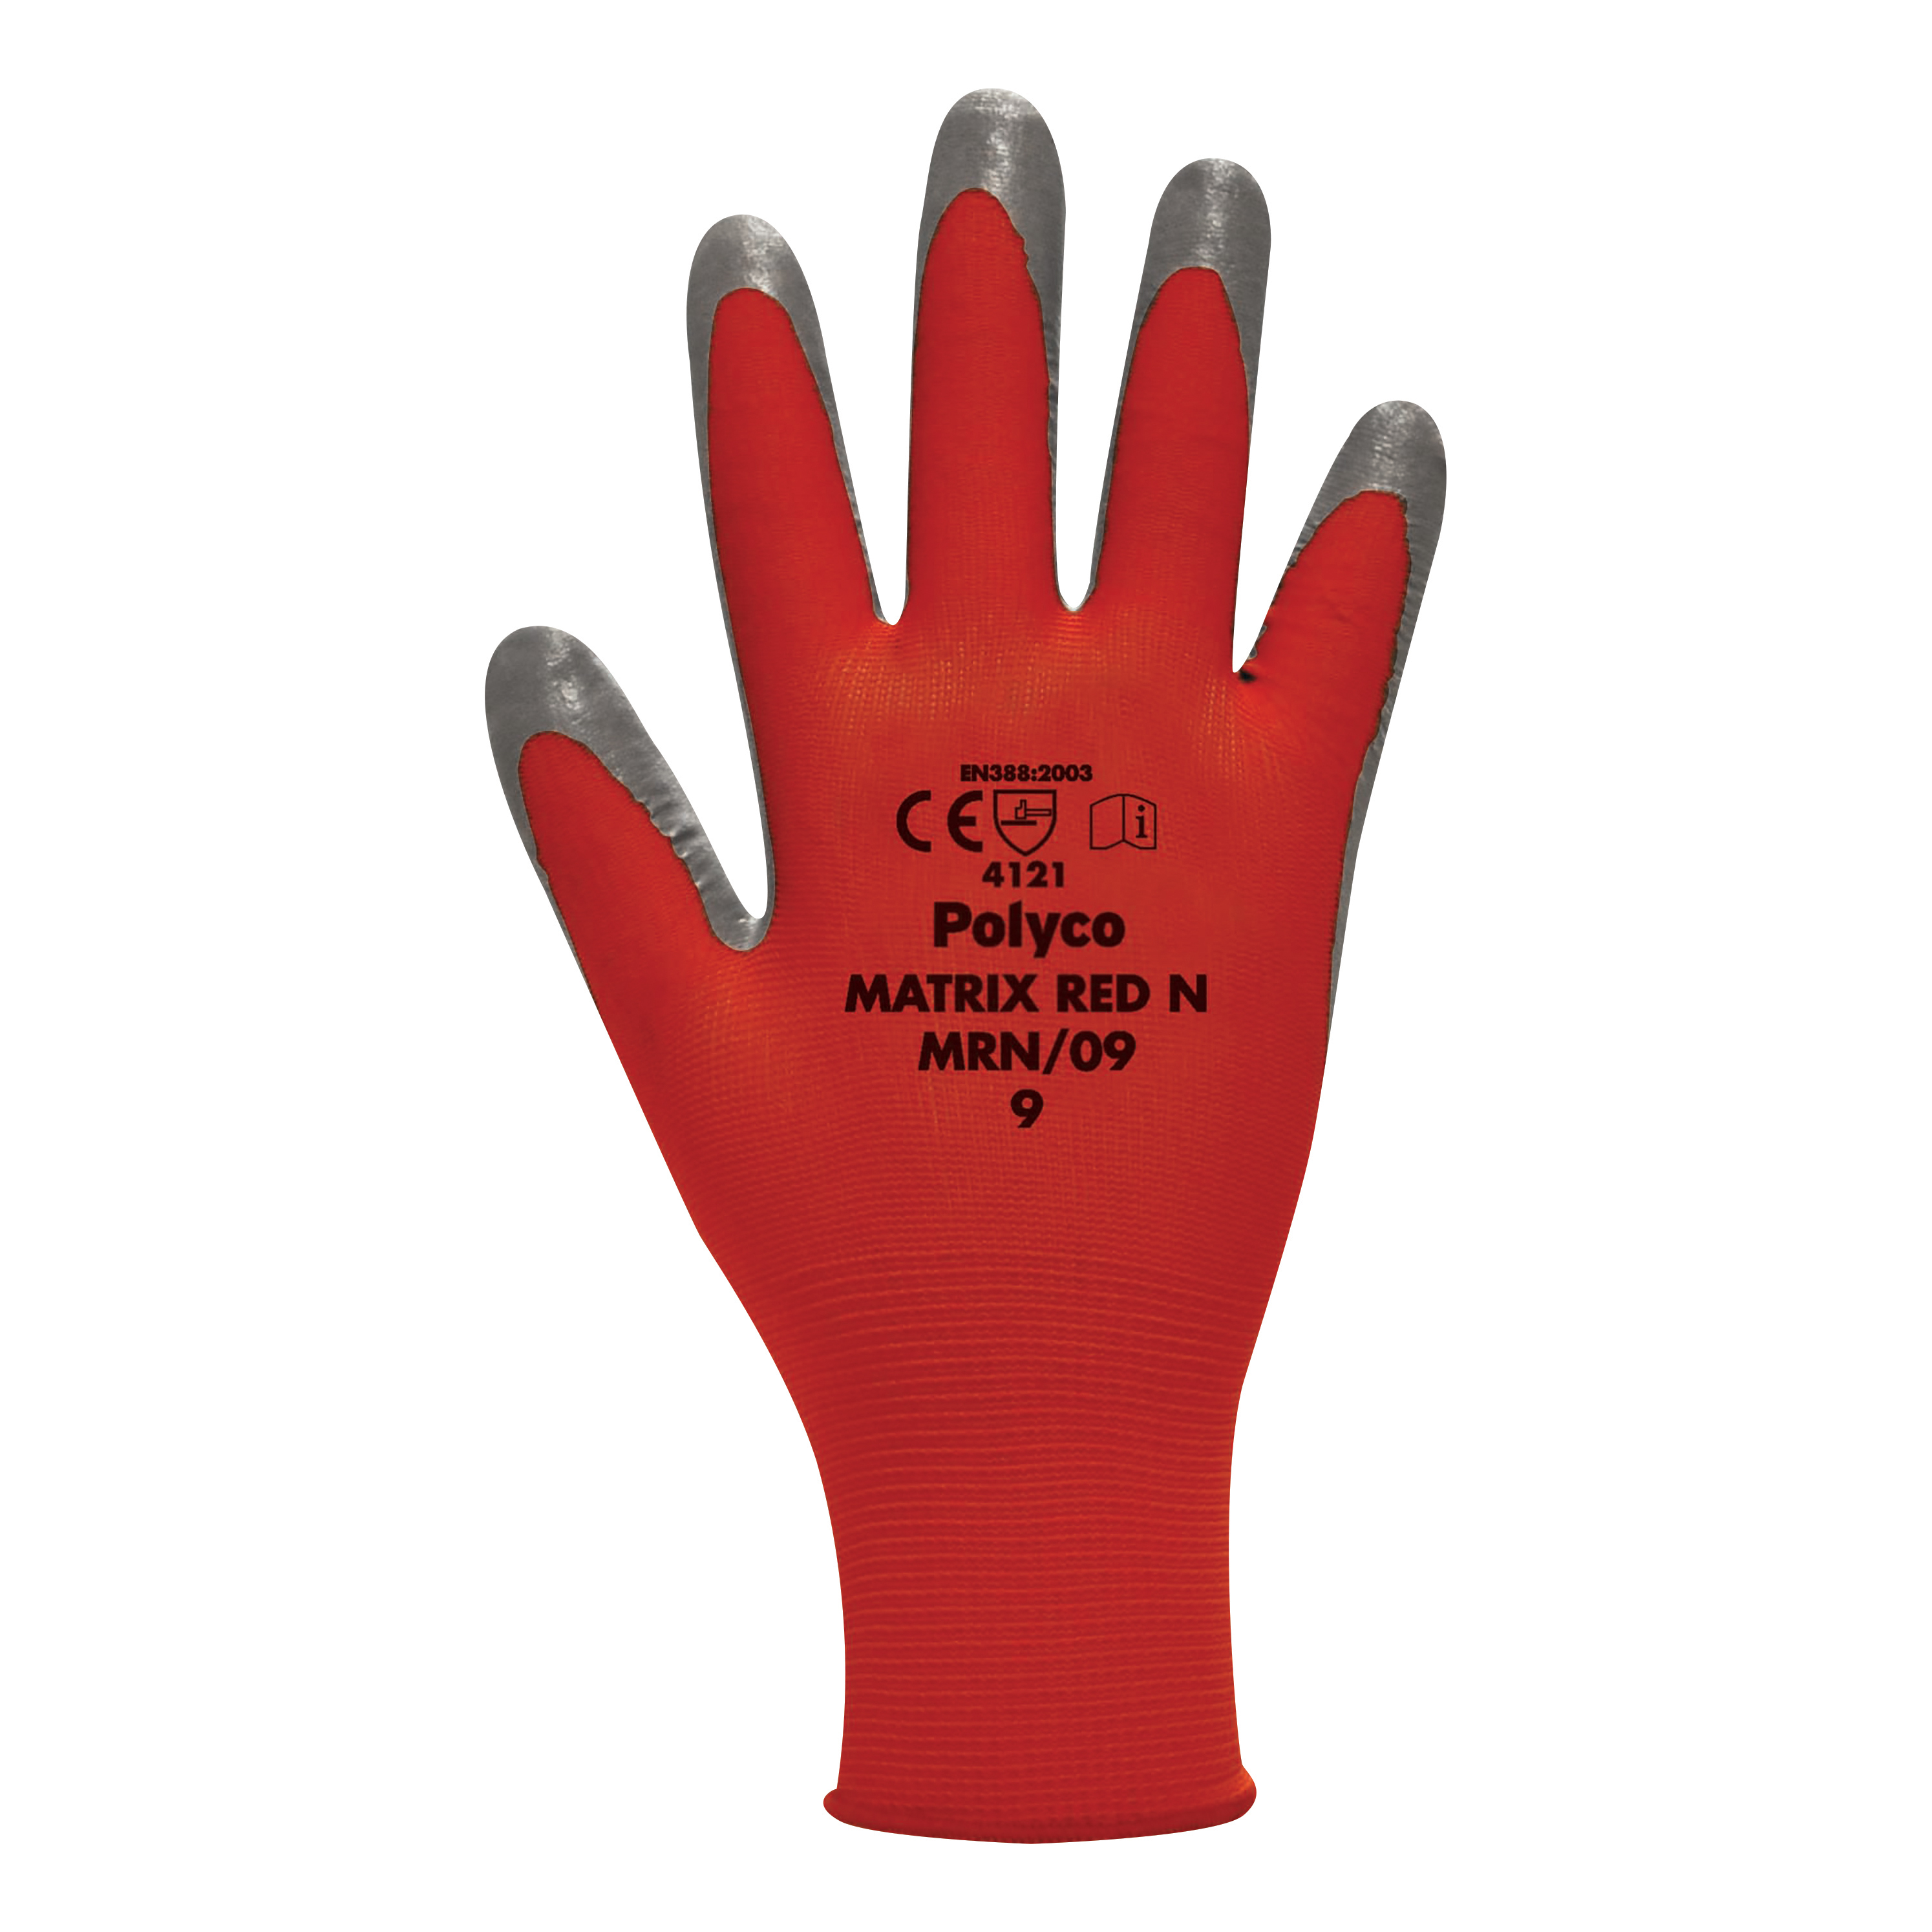 Protective gloves Polyco Gloves Nitrile Foam Coated 15 Gauge Size 9 Red/Black Pair Ref MRN/09